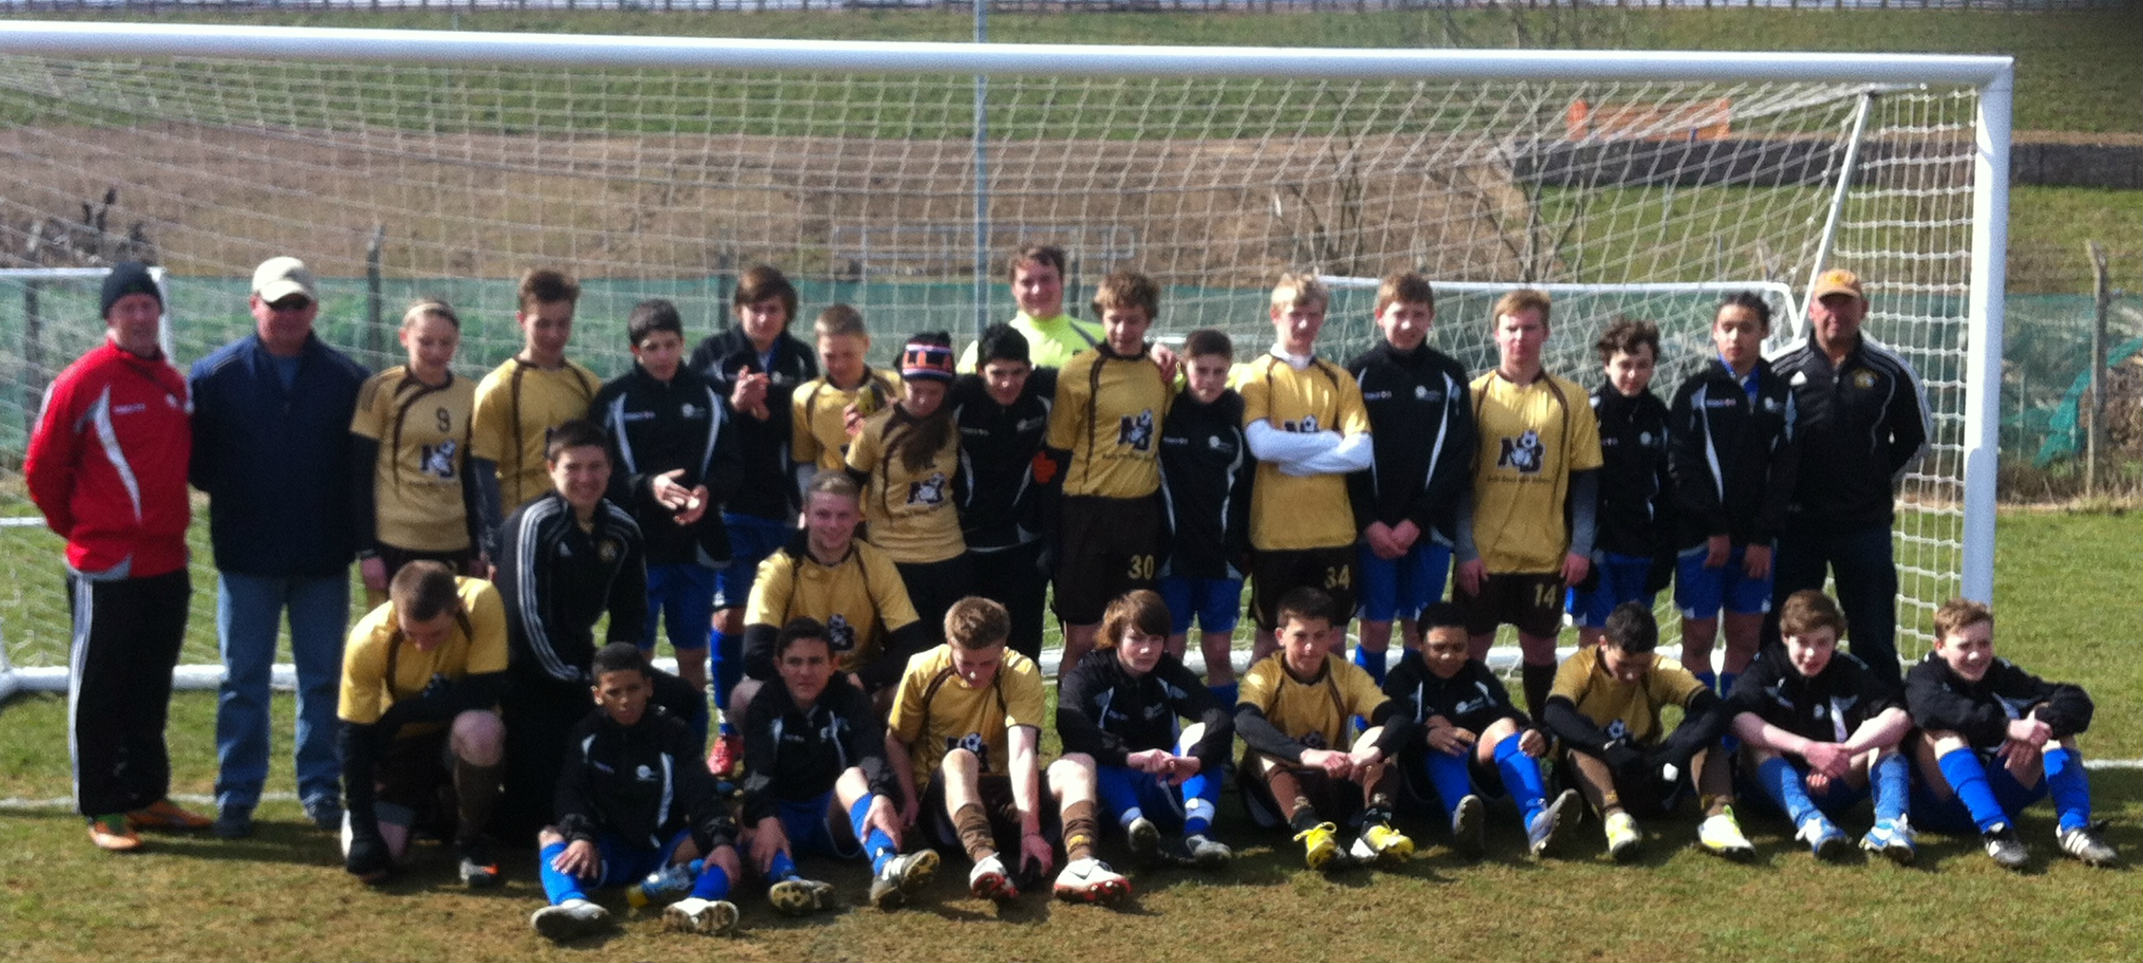 NCF Elites with the footballers from Oregon